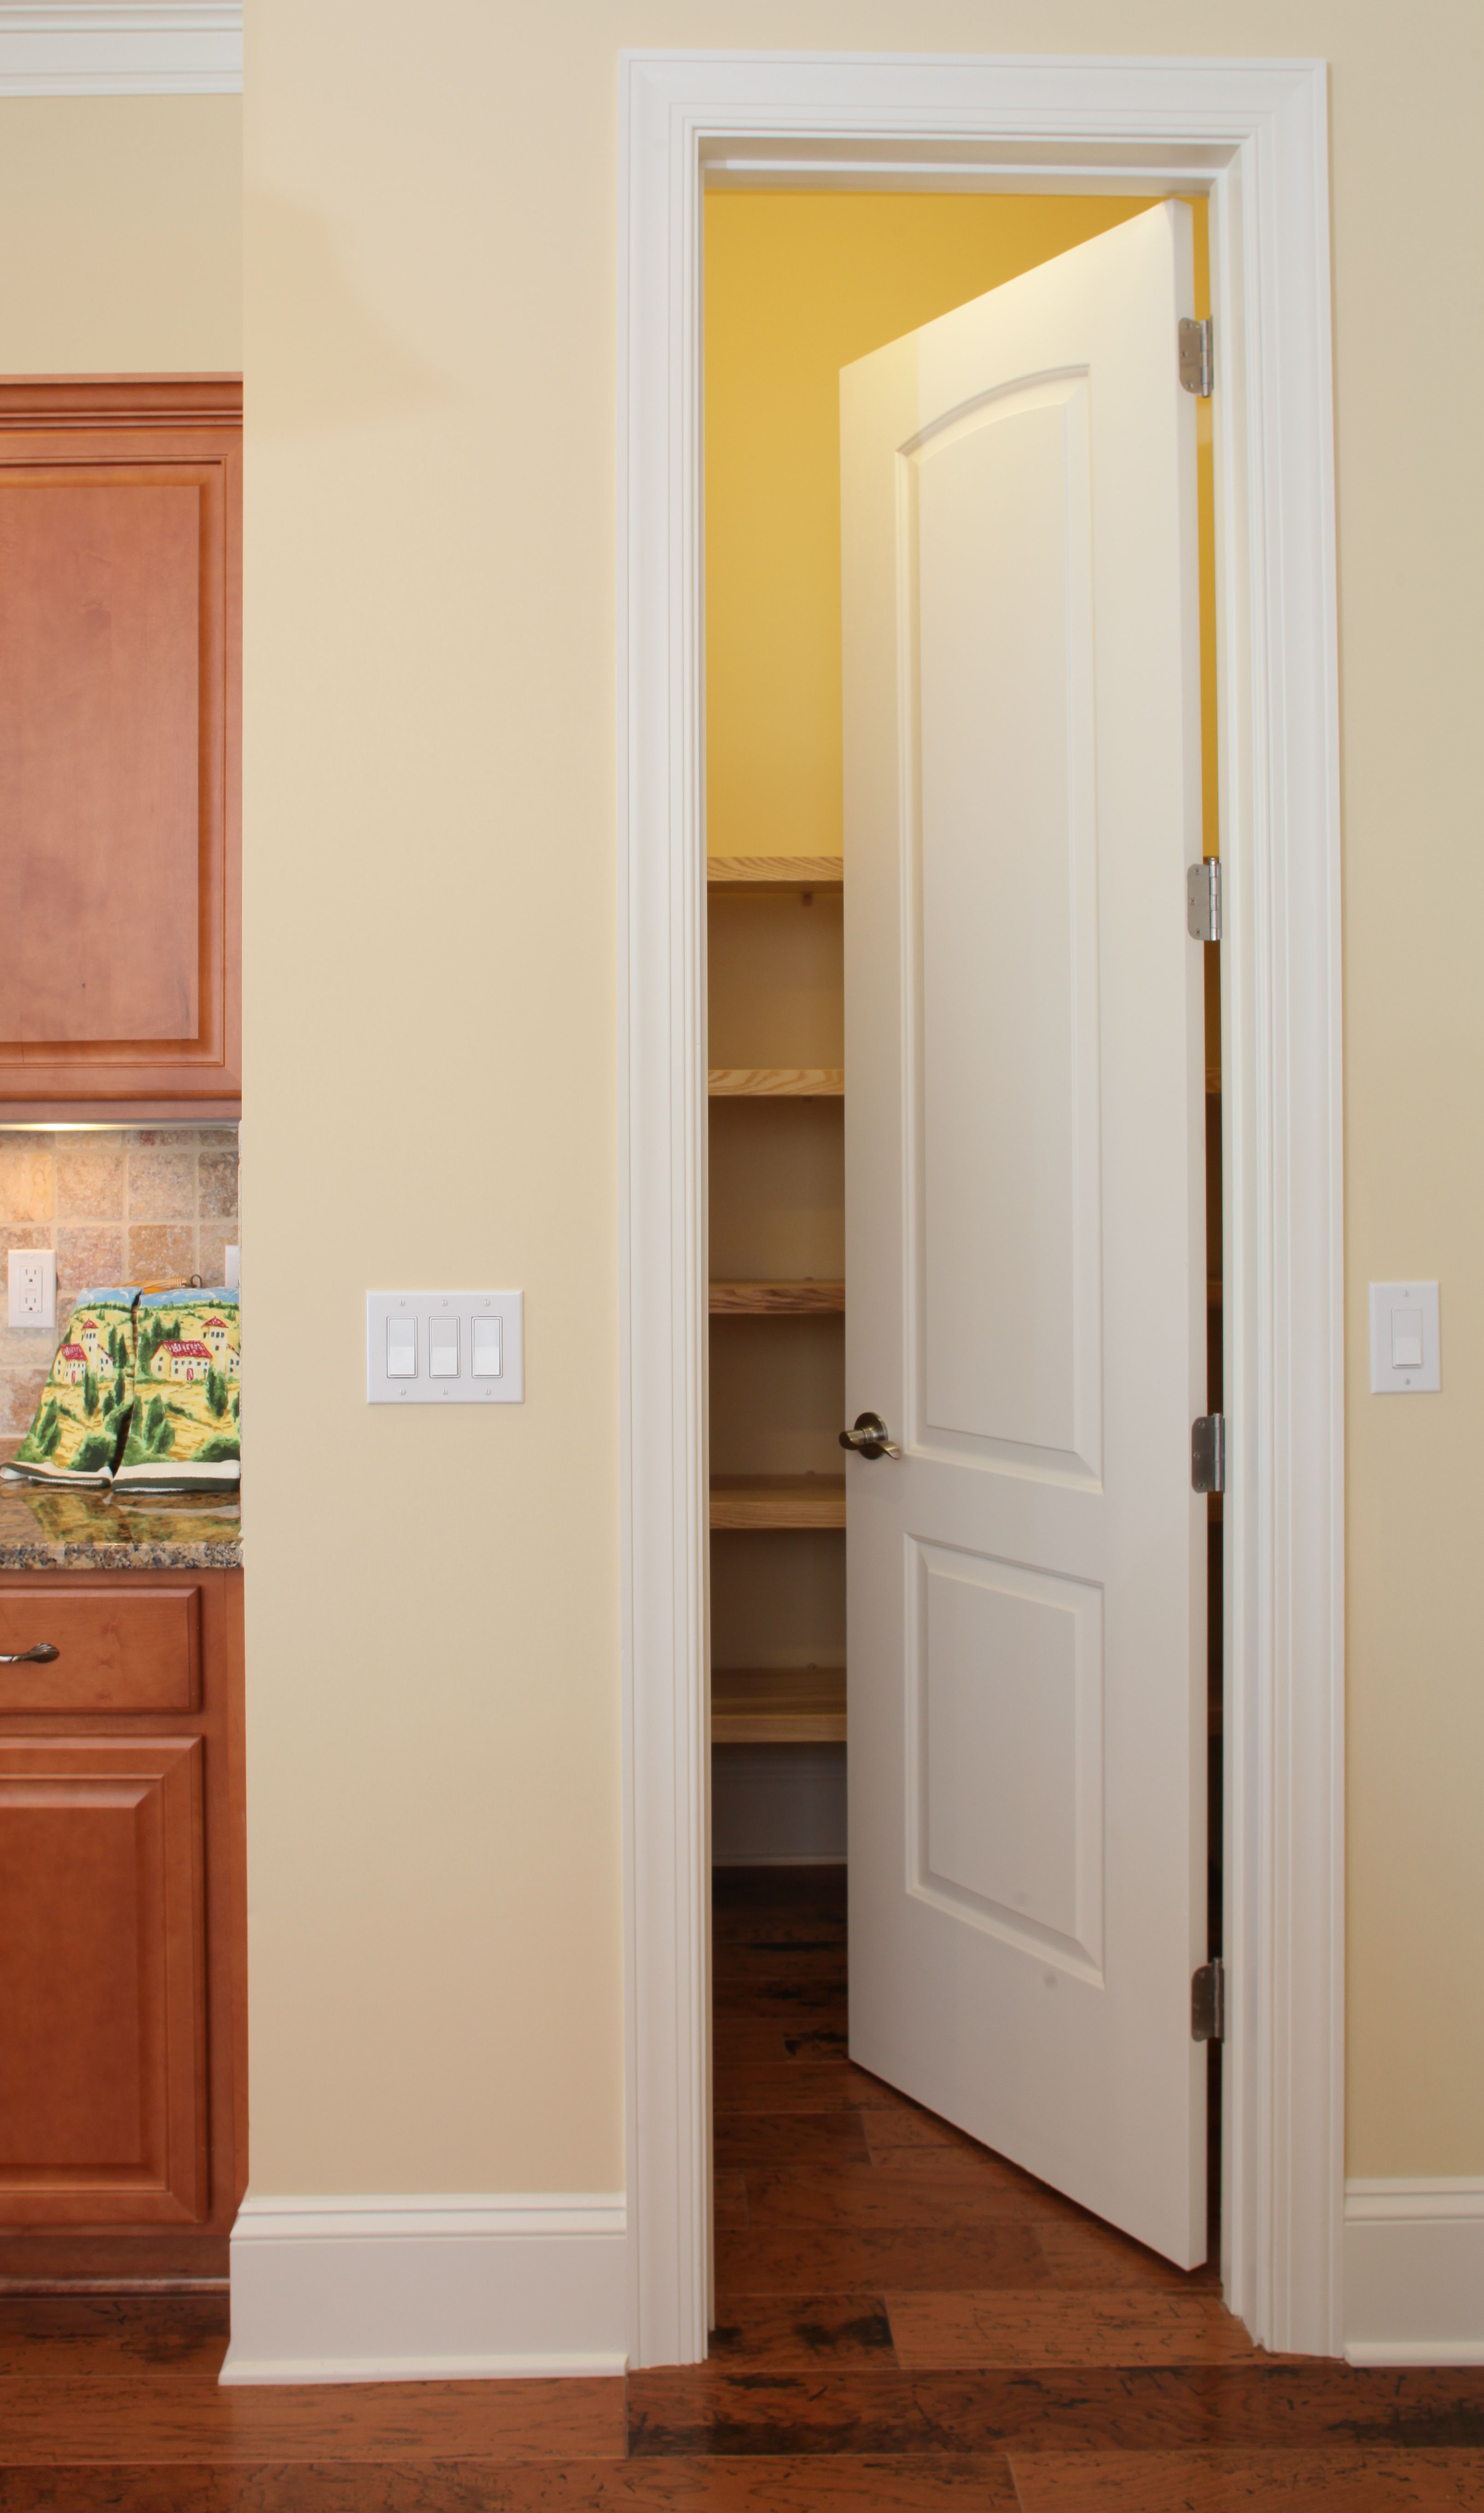 Elegant These 8u0027 Tall Interior Doors At A Whole New Dimension To Your Home.